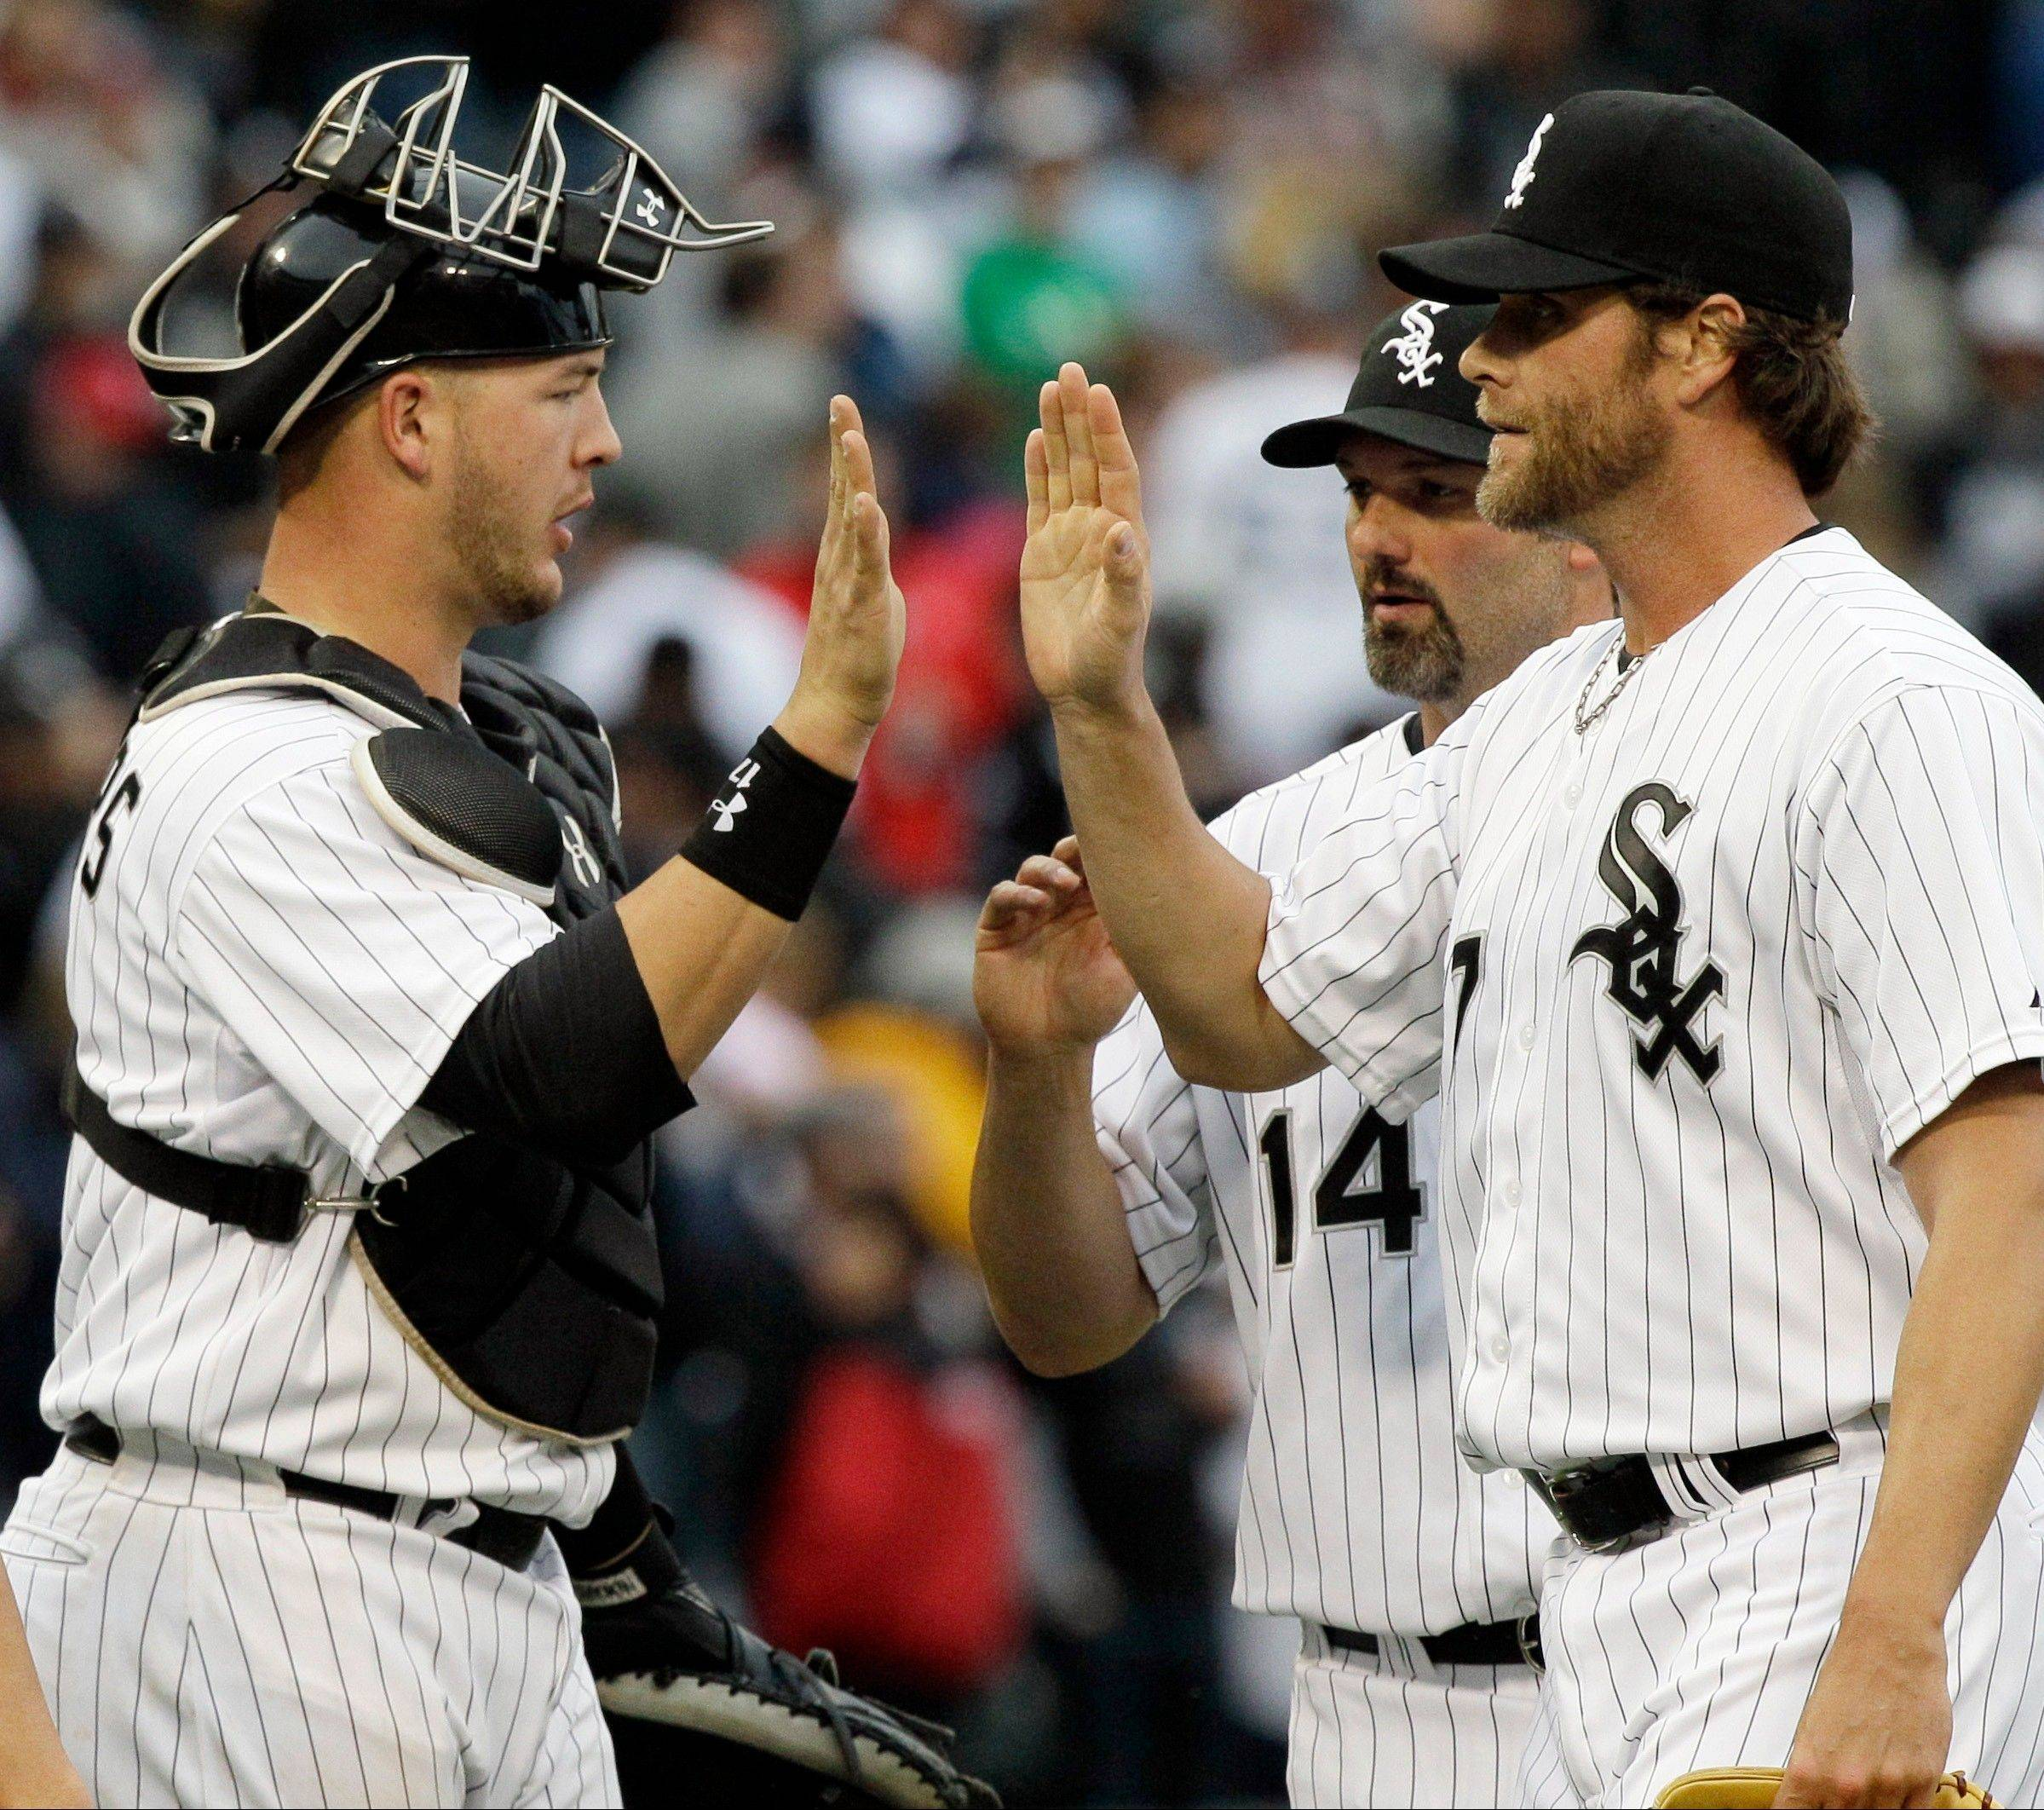 White Sox closer Matt Thornton, right, catcher Tyler Flowers and Paul Konerko celebrate after the White Sox beat the Tigers 5-1 Saturday at U.S. Cellular Field. Making a rare start, Flowers homered, stole the first base of his major-league career and threw out a runner trying to steal.